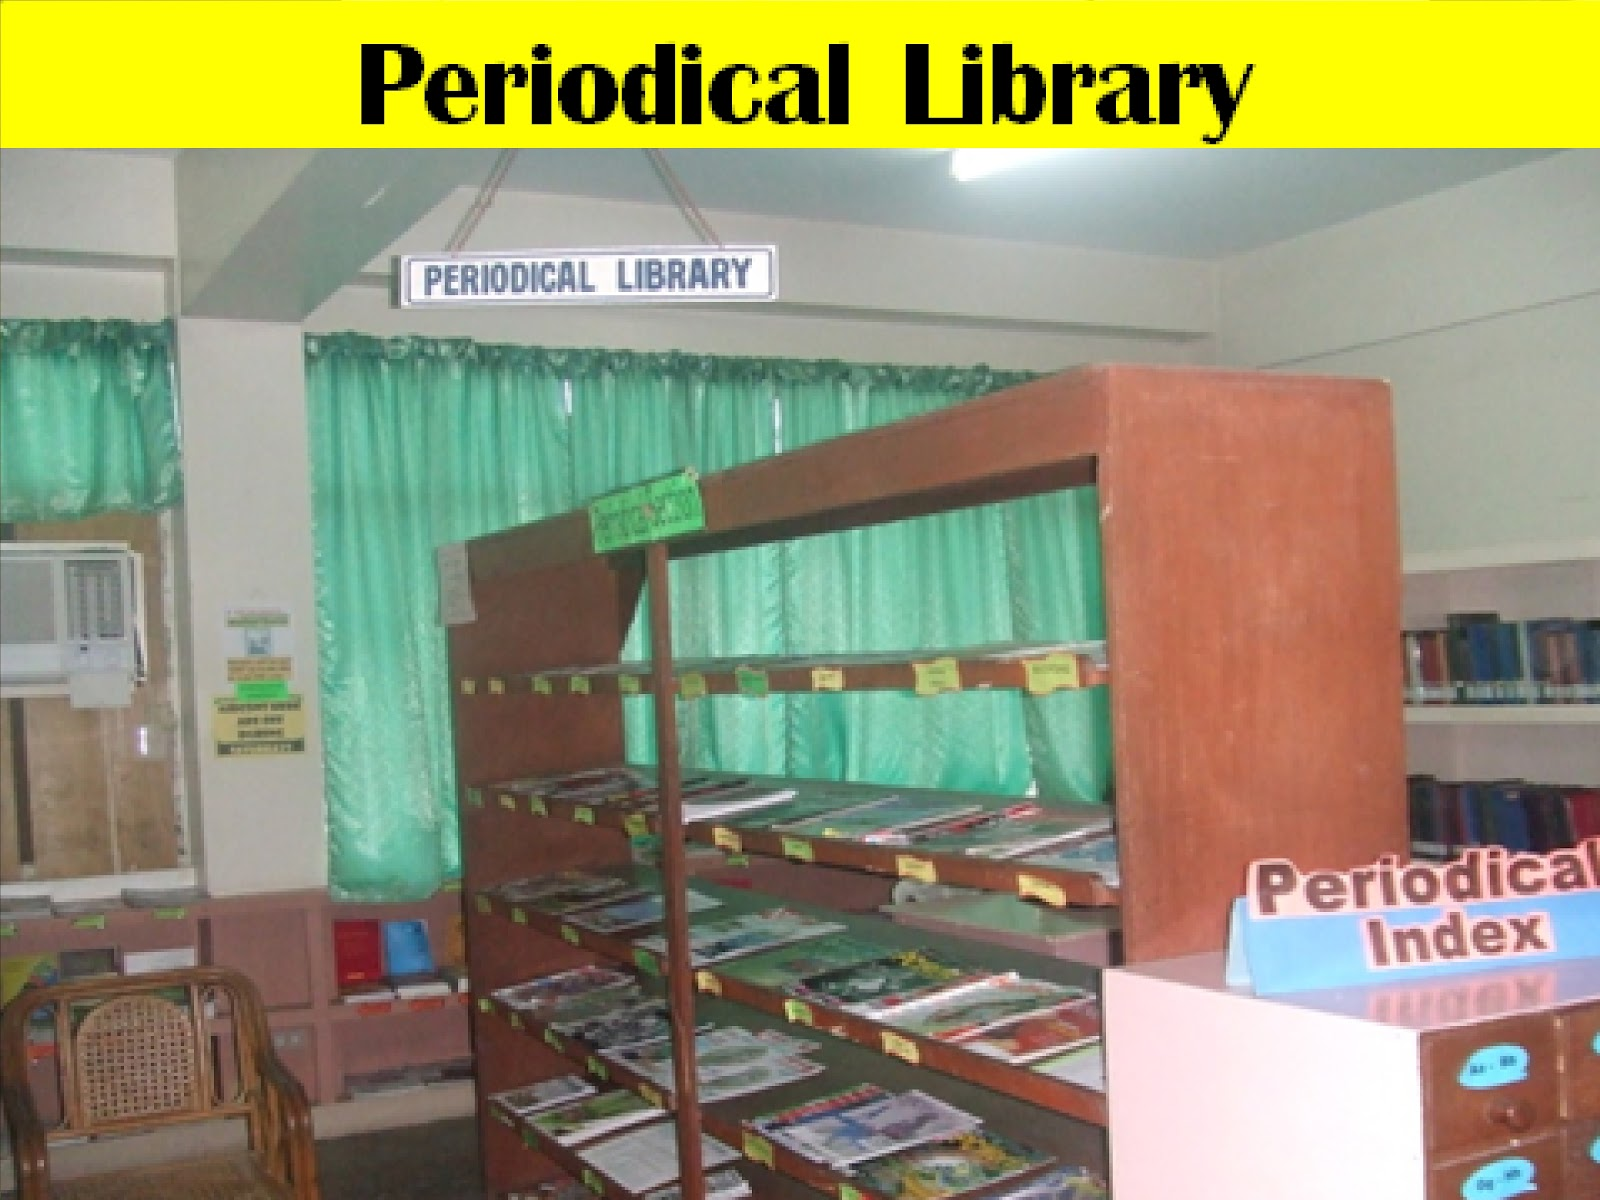 The Periodical Library Houses All The Bound And Loose Issues Of Journals,  Magazines & Newspapers These Materials Are Intended To Be Read Inside The  Library